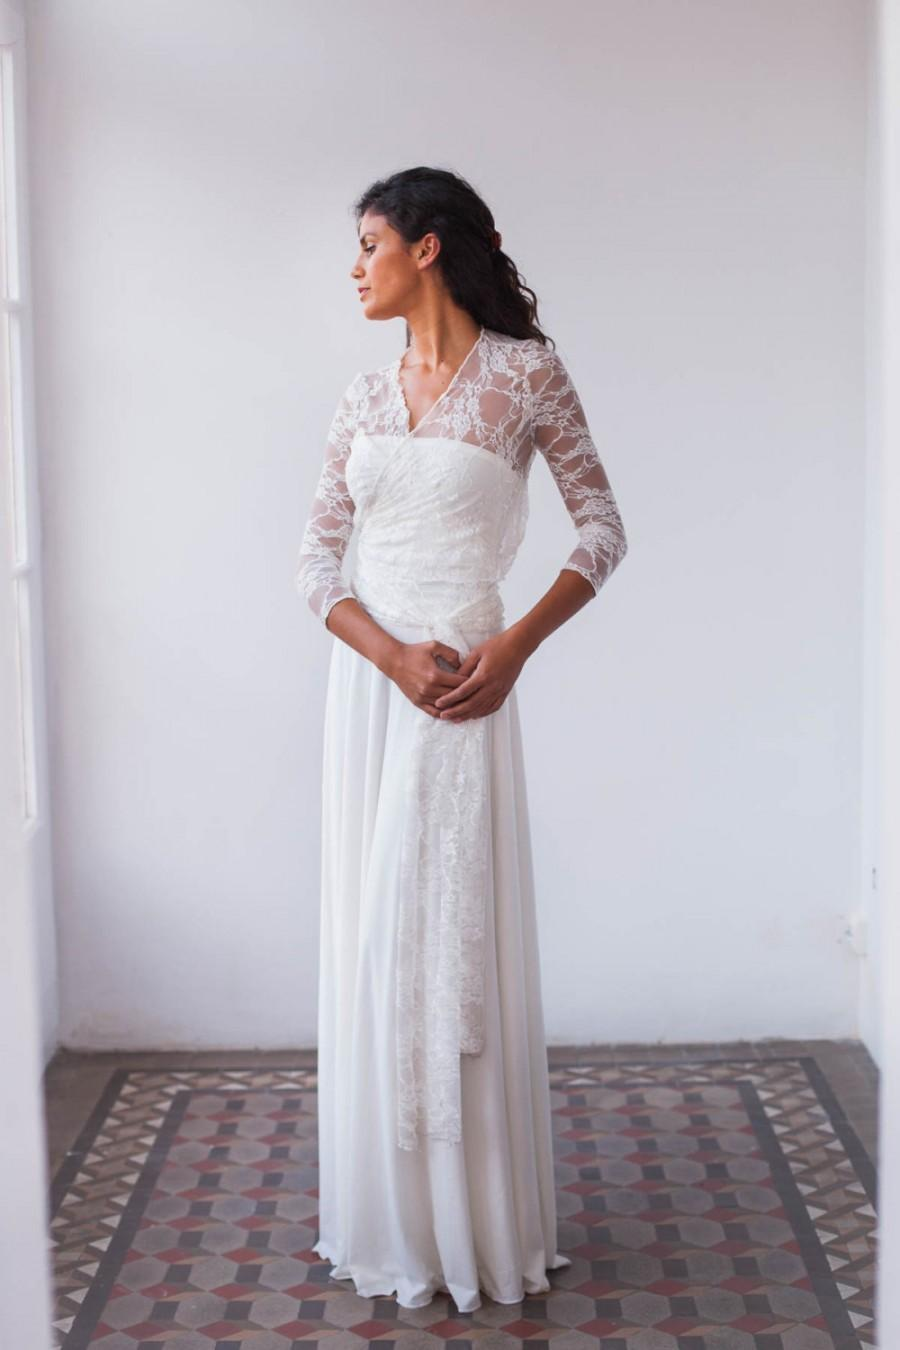 Wedding - Lace wedding dress boho, bohemian wedding dress, lace dress, long sleeve wedding dress, lace sleeves dress, lace bridal gown, lace weddings